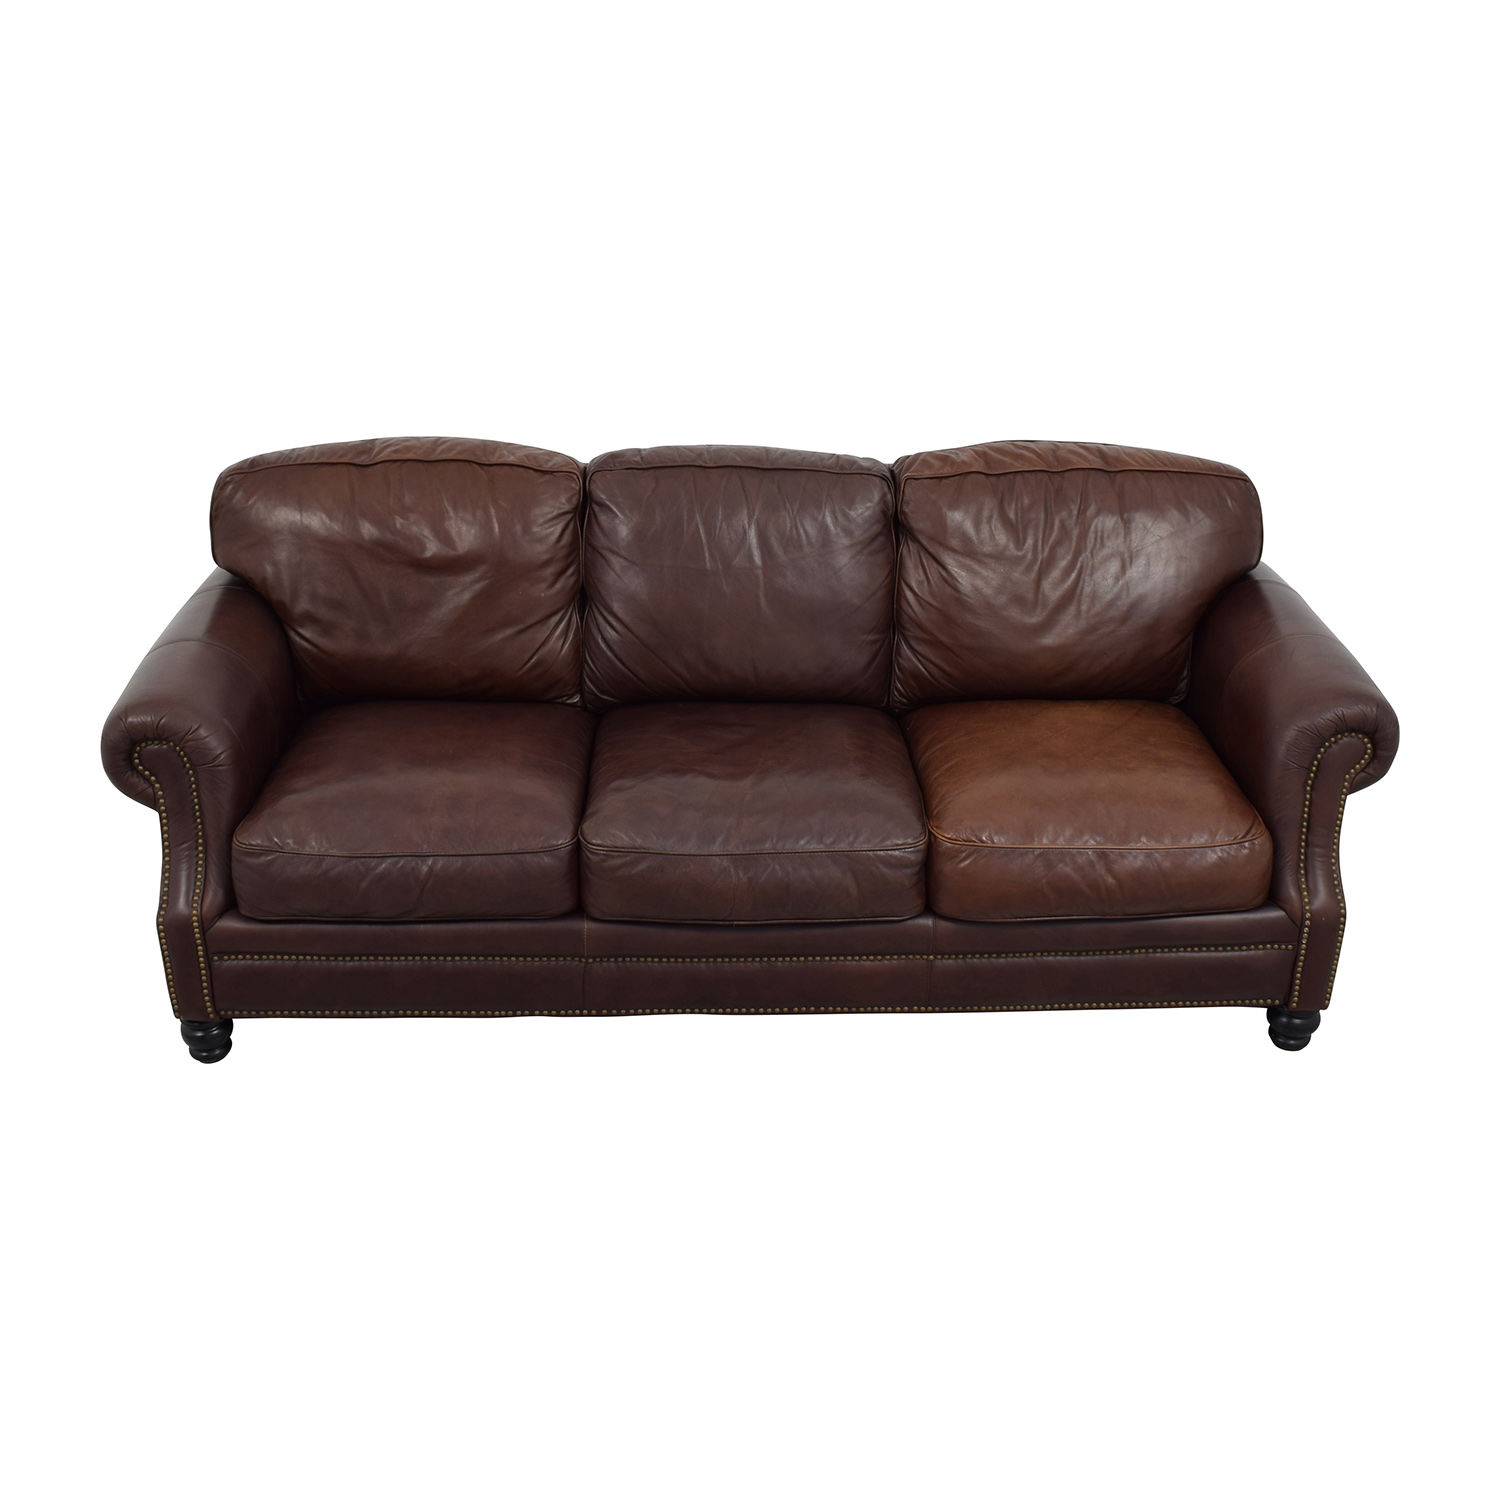 Leather studded sofa leather studded sofa black i m in for Leather studded couch